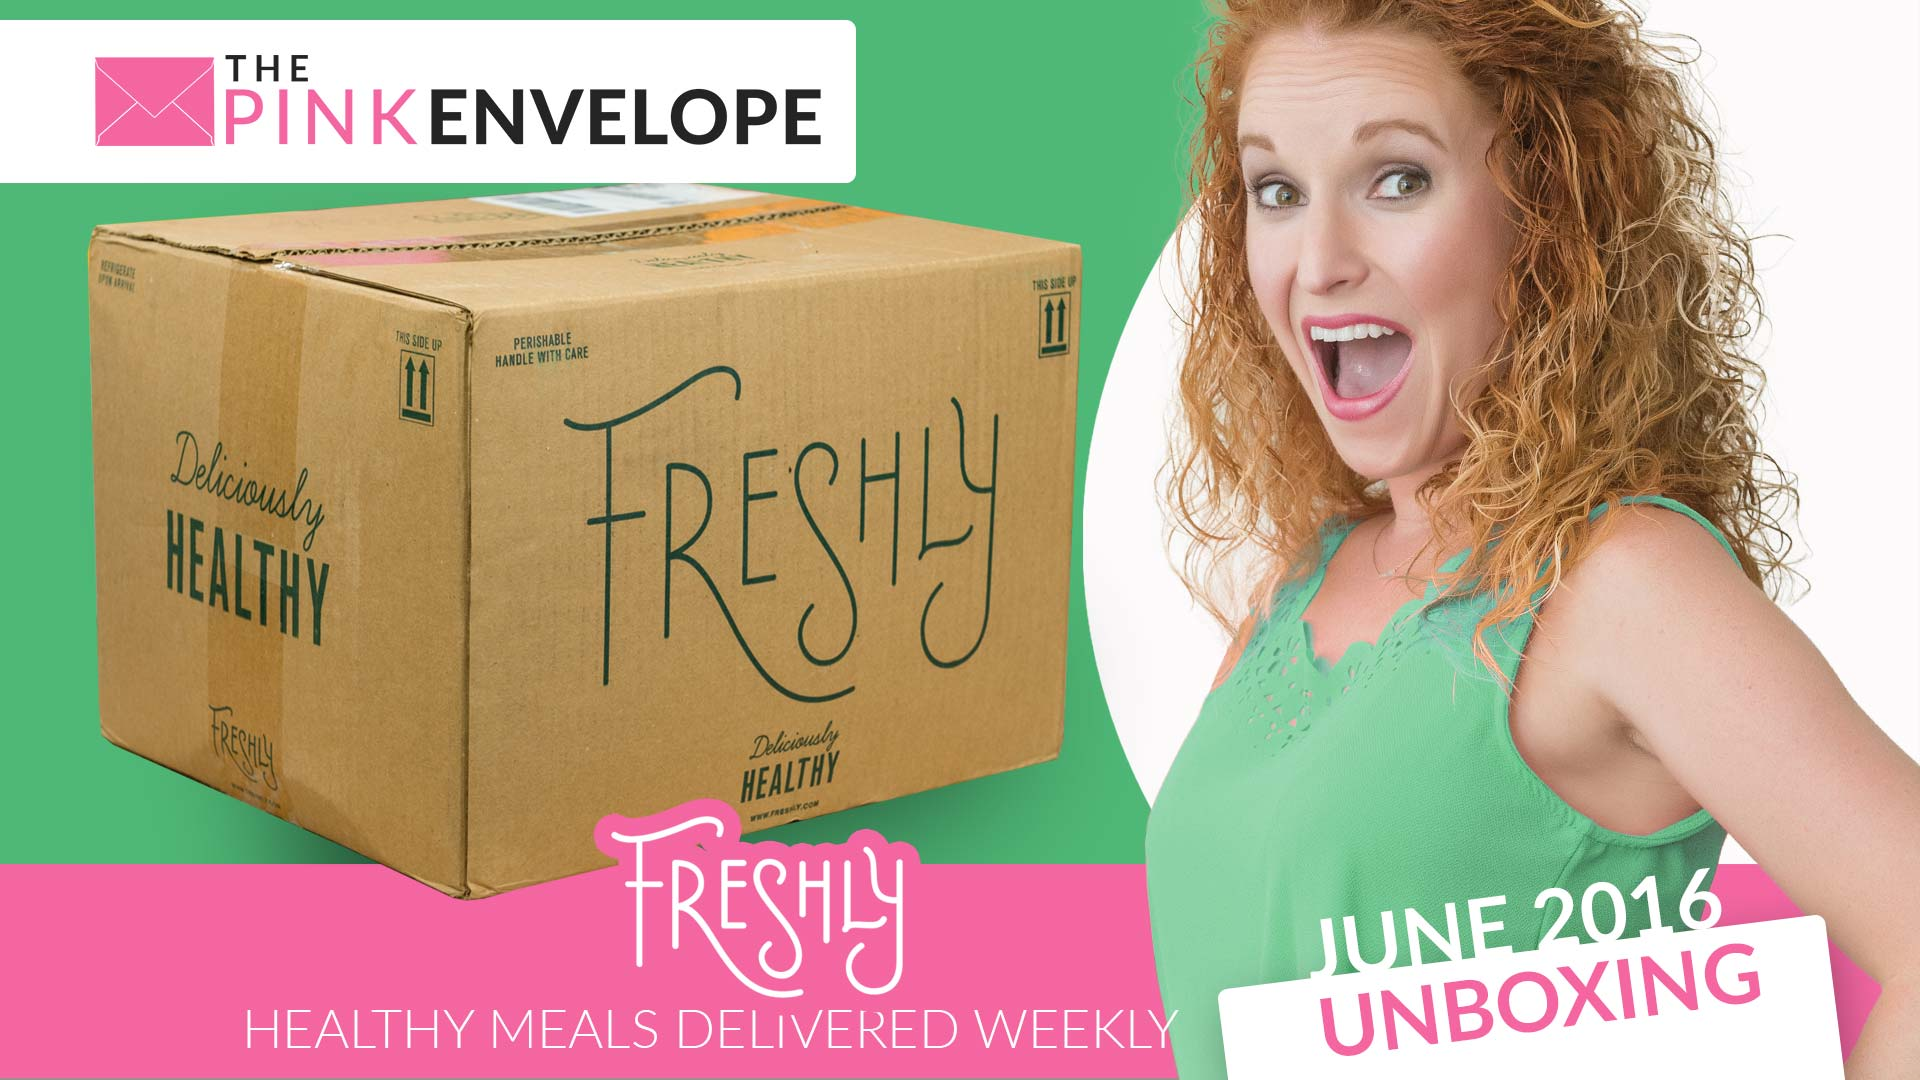 Freshly Meal Box Review 2016